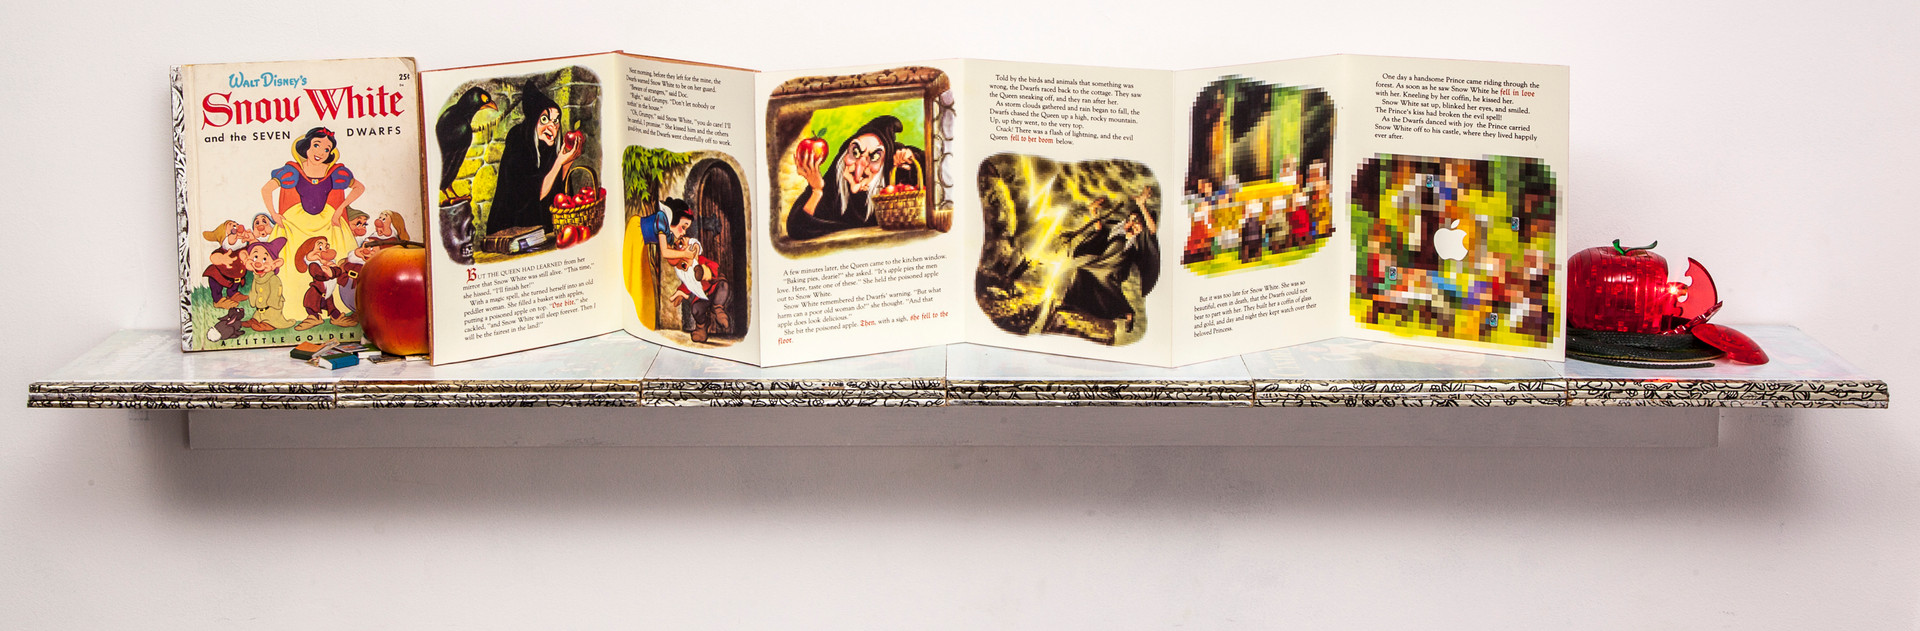 Altered book, Walt Disney's Snow White and the Seven Dwarves, is displayed on shelf formed by eighteen laminated and whitewashed Walt Disney Golden Books. From left to right, book's illustrations become increasingly pixelated.